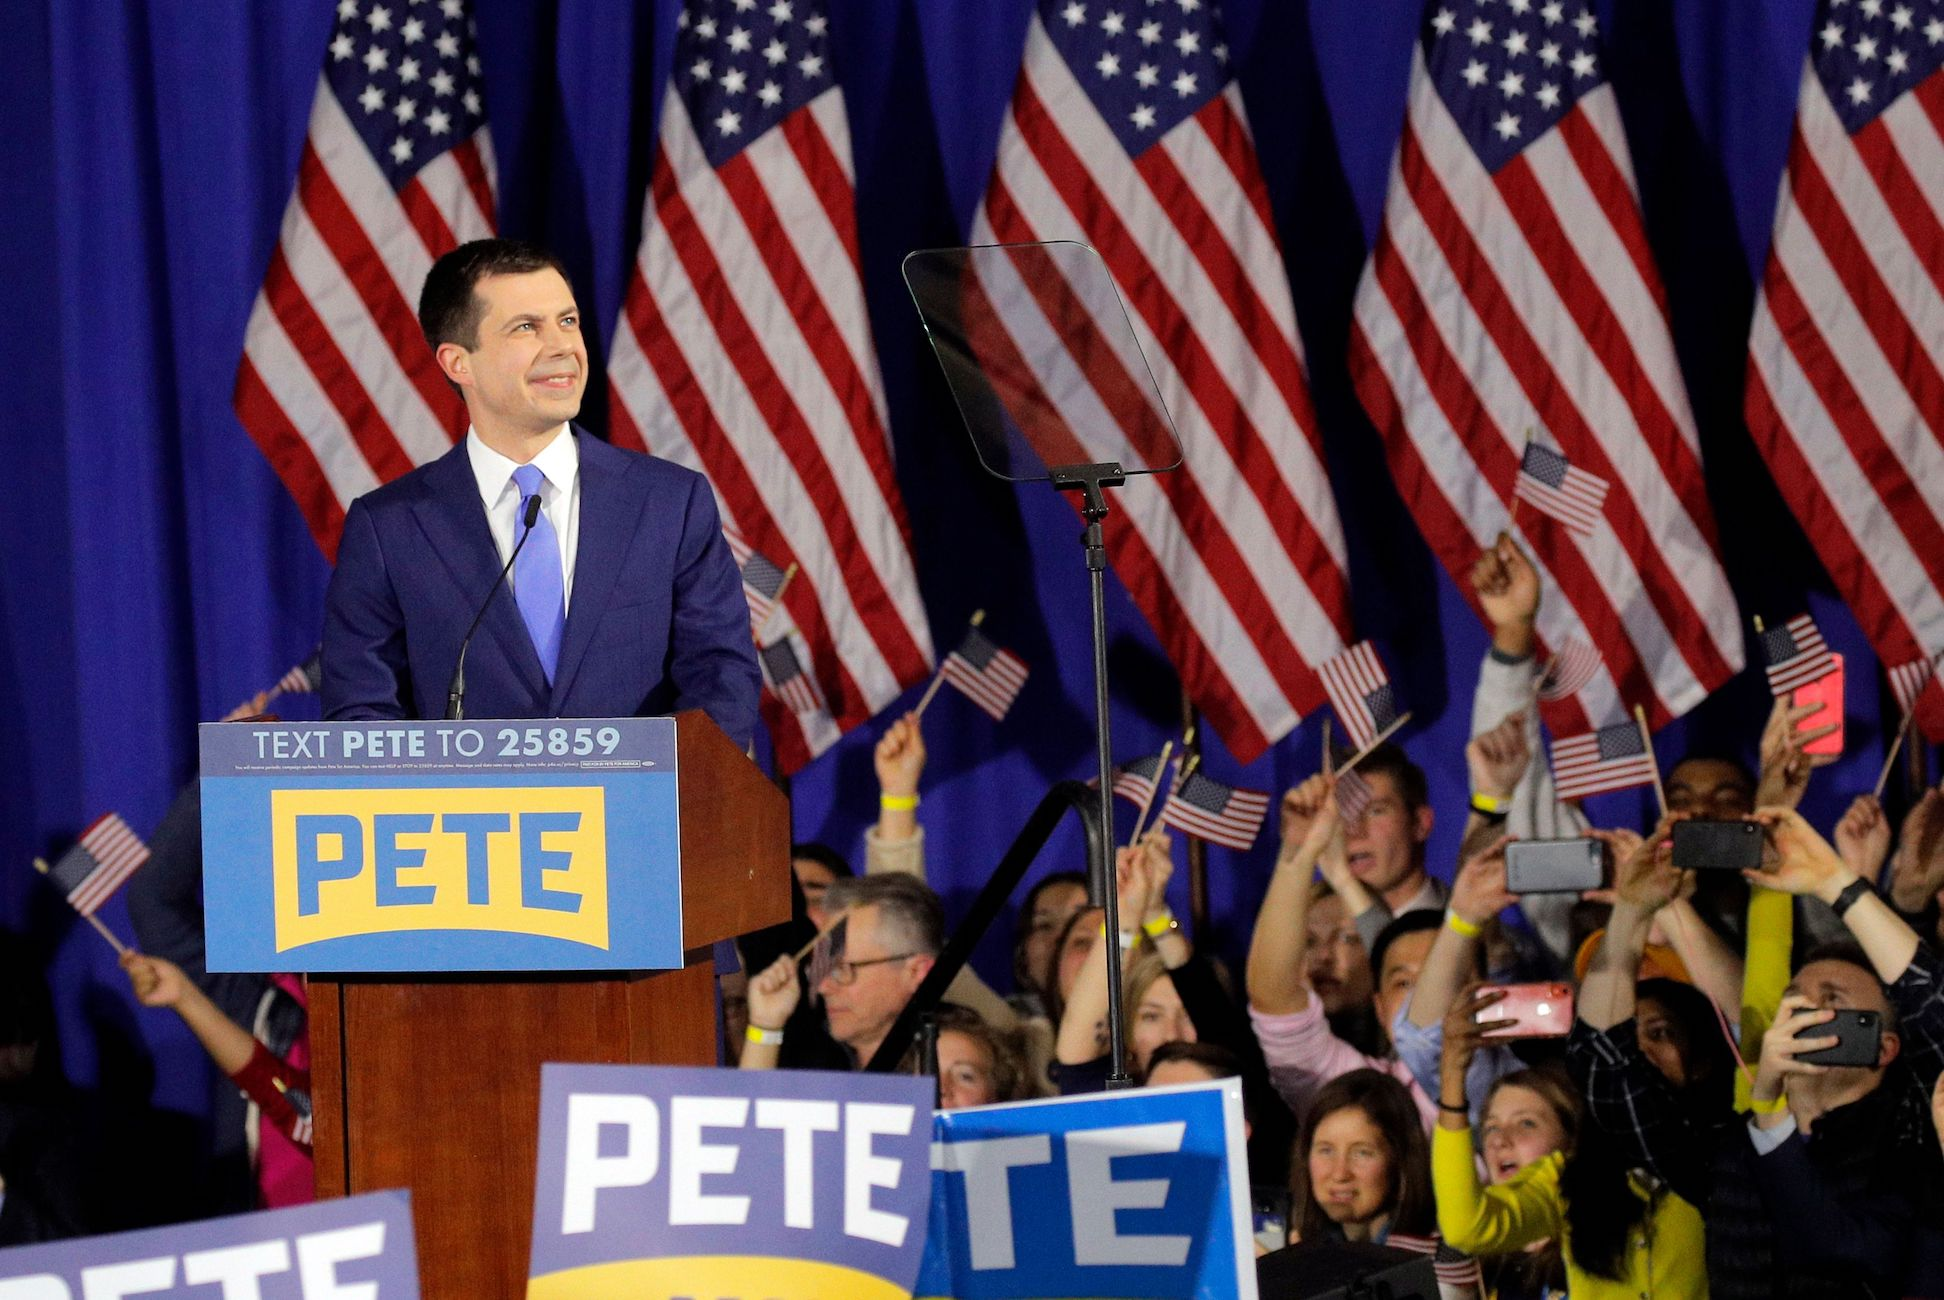 Democratic U.S. presidential candidate and former South Bend Mayor Pete Buttigieg speaks at his New Hampshire primary night rally in Nashua, N.H., U.S.